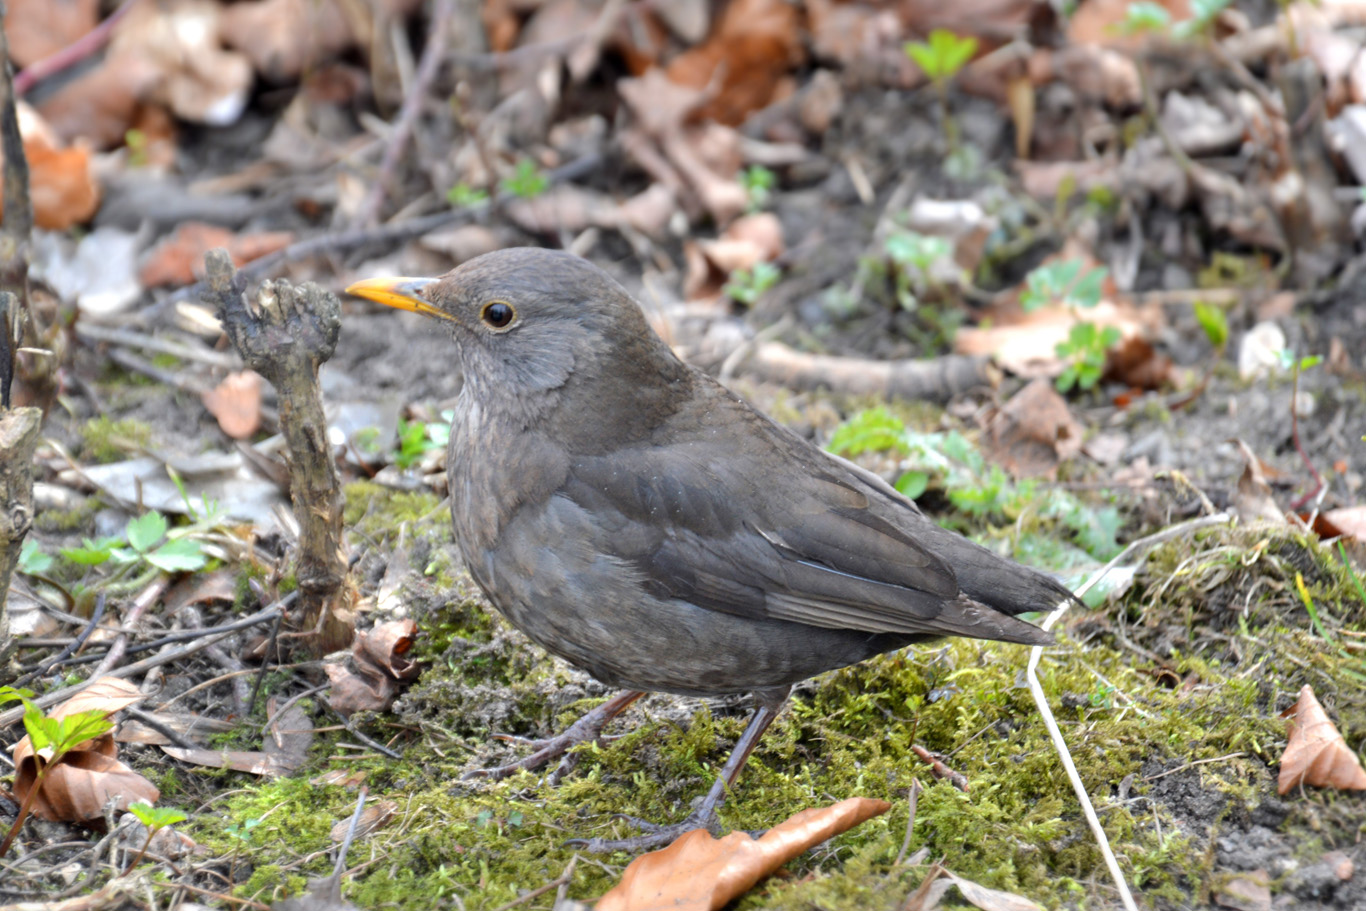 A blackbird in the bushes